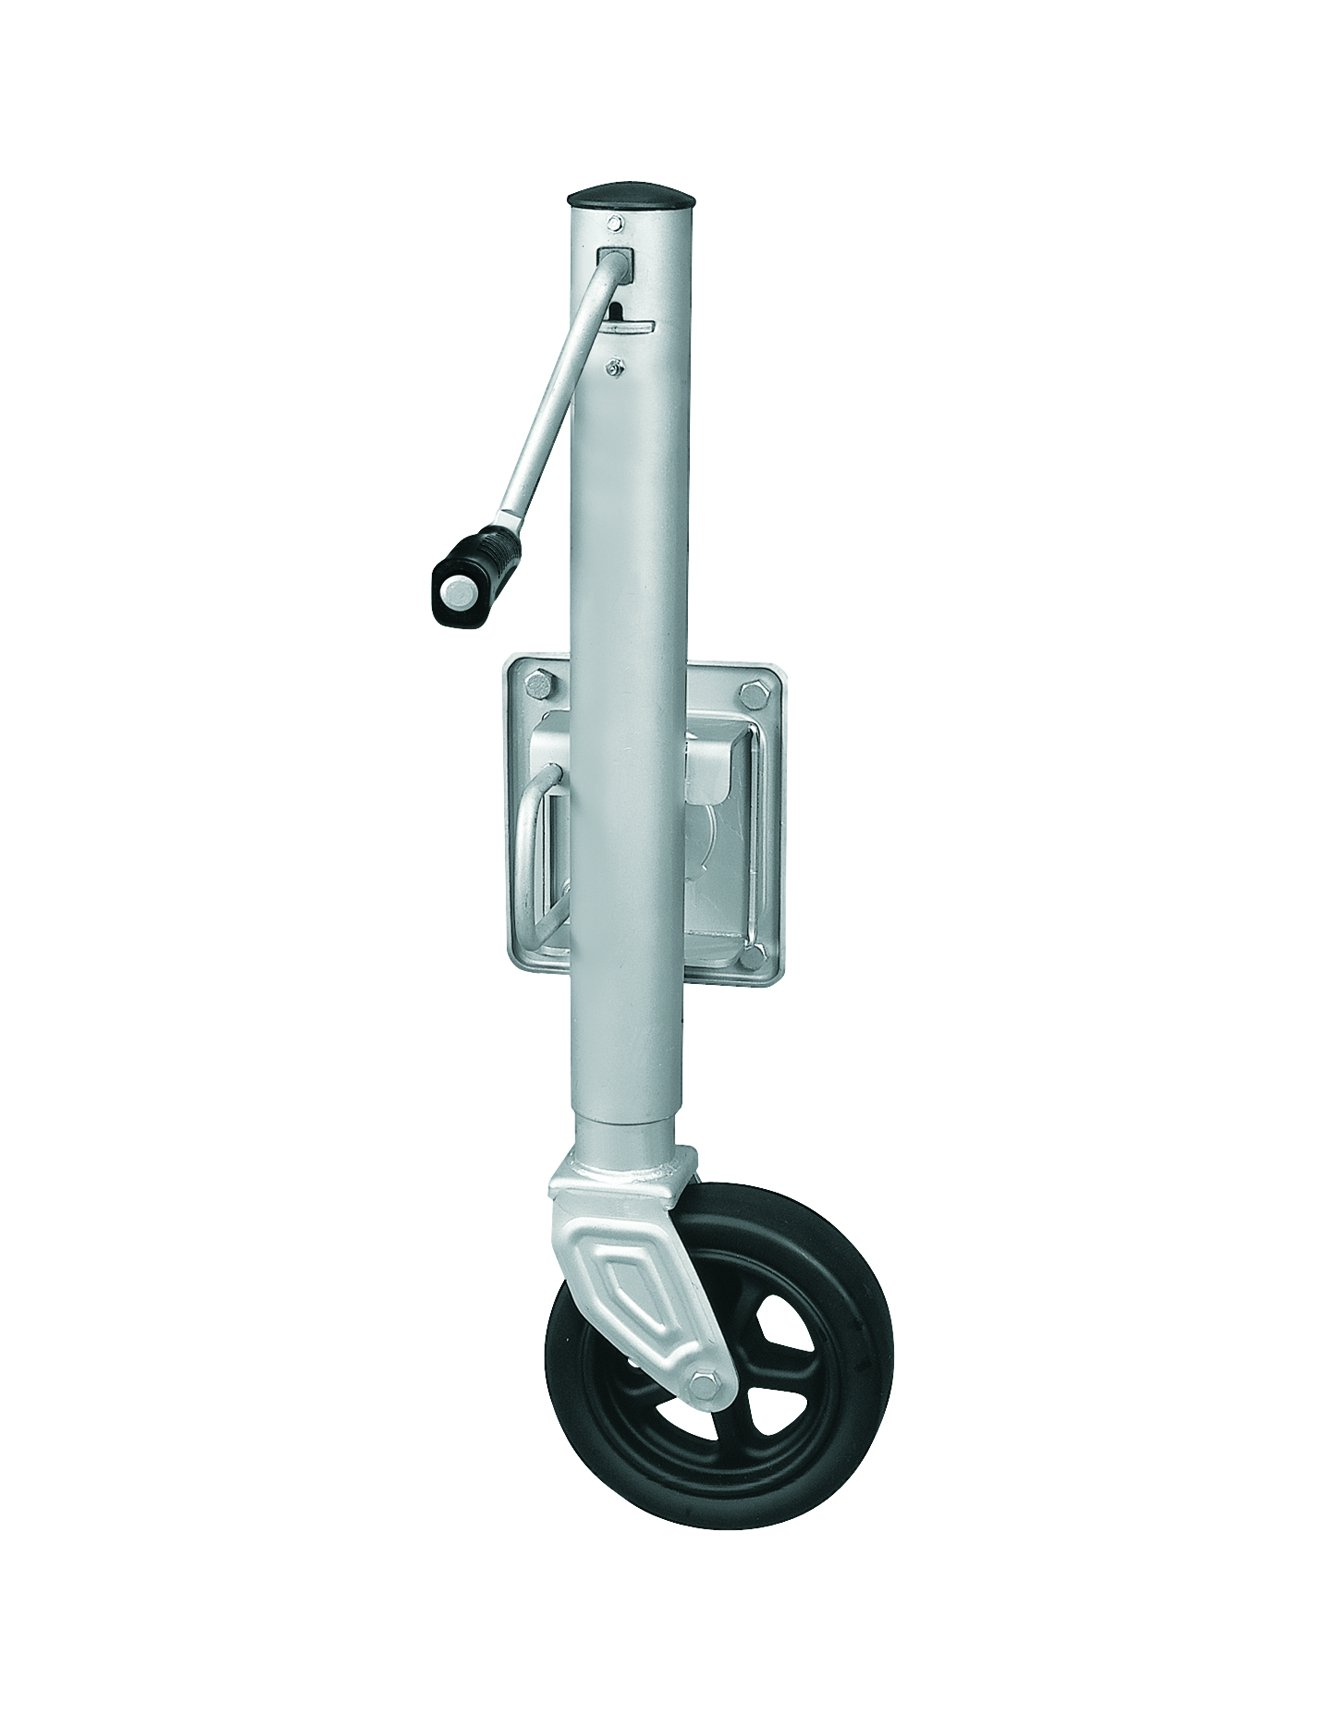 SeaSense Mighty Wheel Swing-Up Trailer Jack with SeaCoat, 2500-Pound by SeaSense